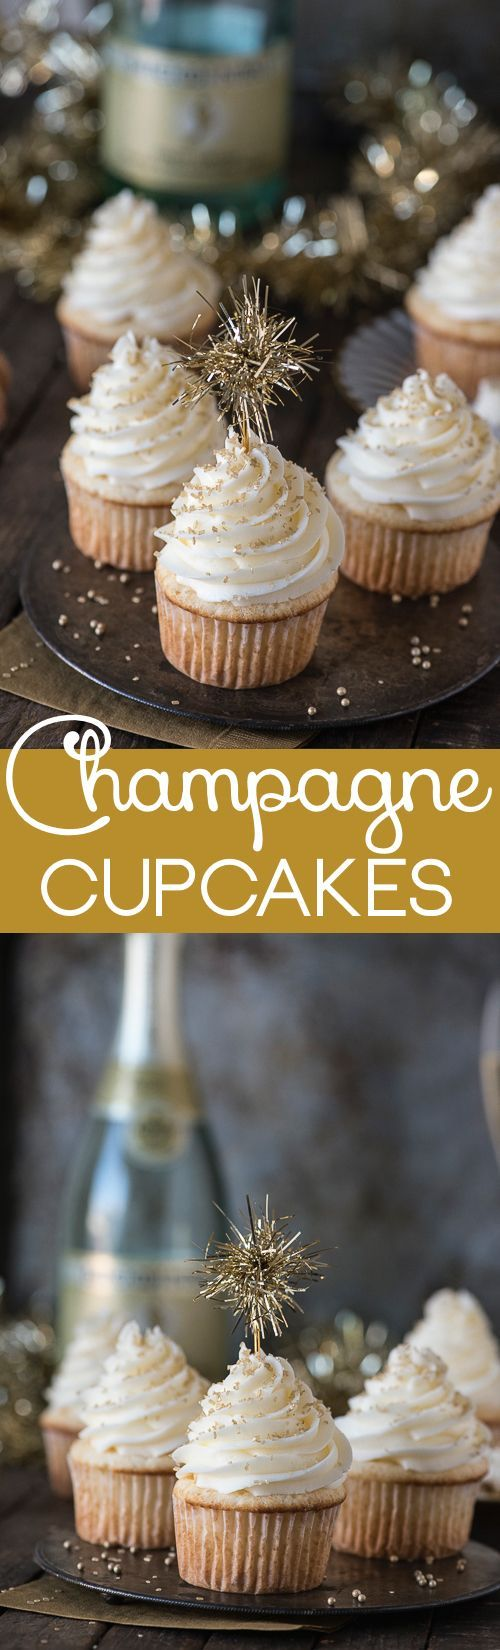 Champagne Cupcakes for New Year's Eve ... YES PLEASE!